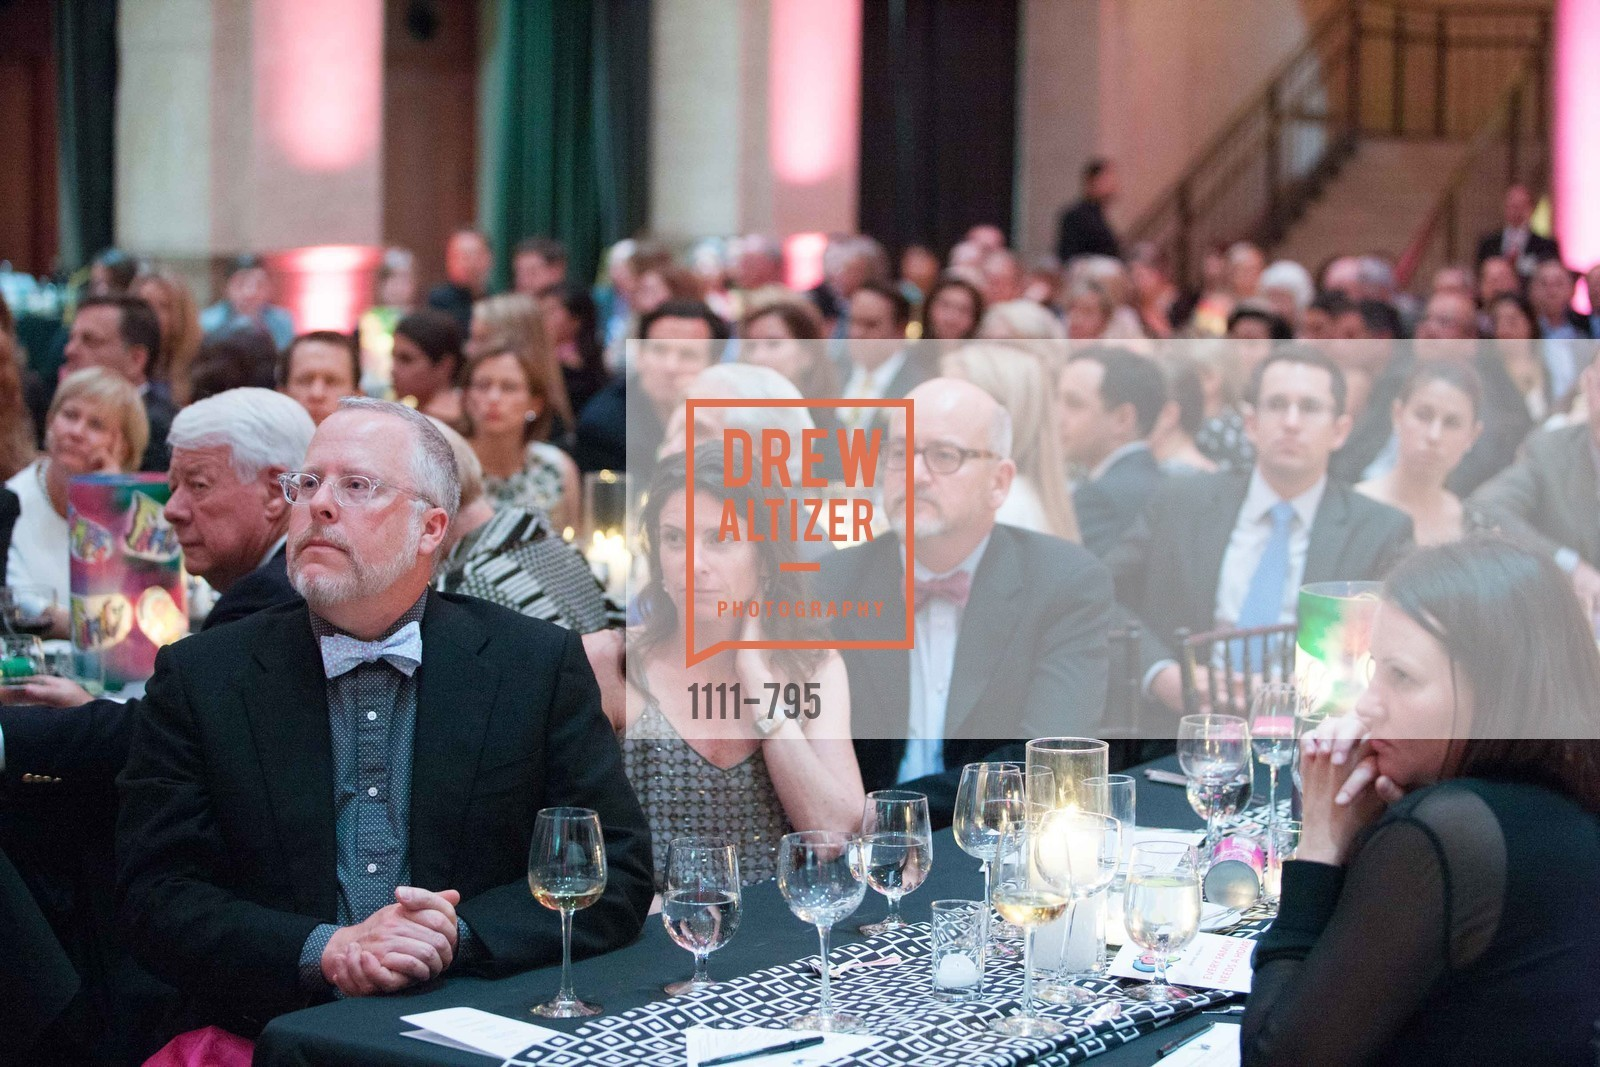 Atmosphere, COMPASS FAMILY SERVICES Annual Spring Benefit:  Every Family Needs A Home, US, April 22nd, 2015,Drew Altizer, Drew Altizer Photography, full-service agency, private events, San Francisco photographer, photographer california